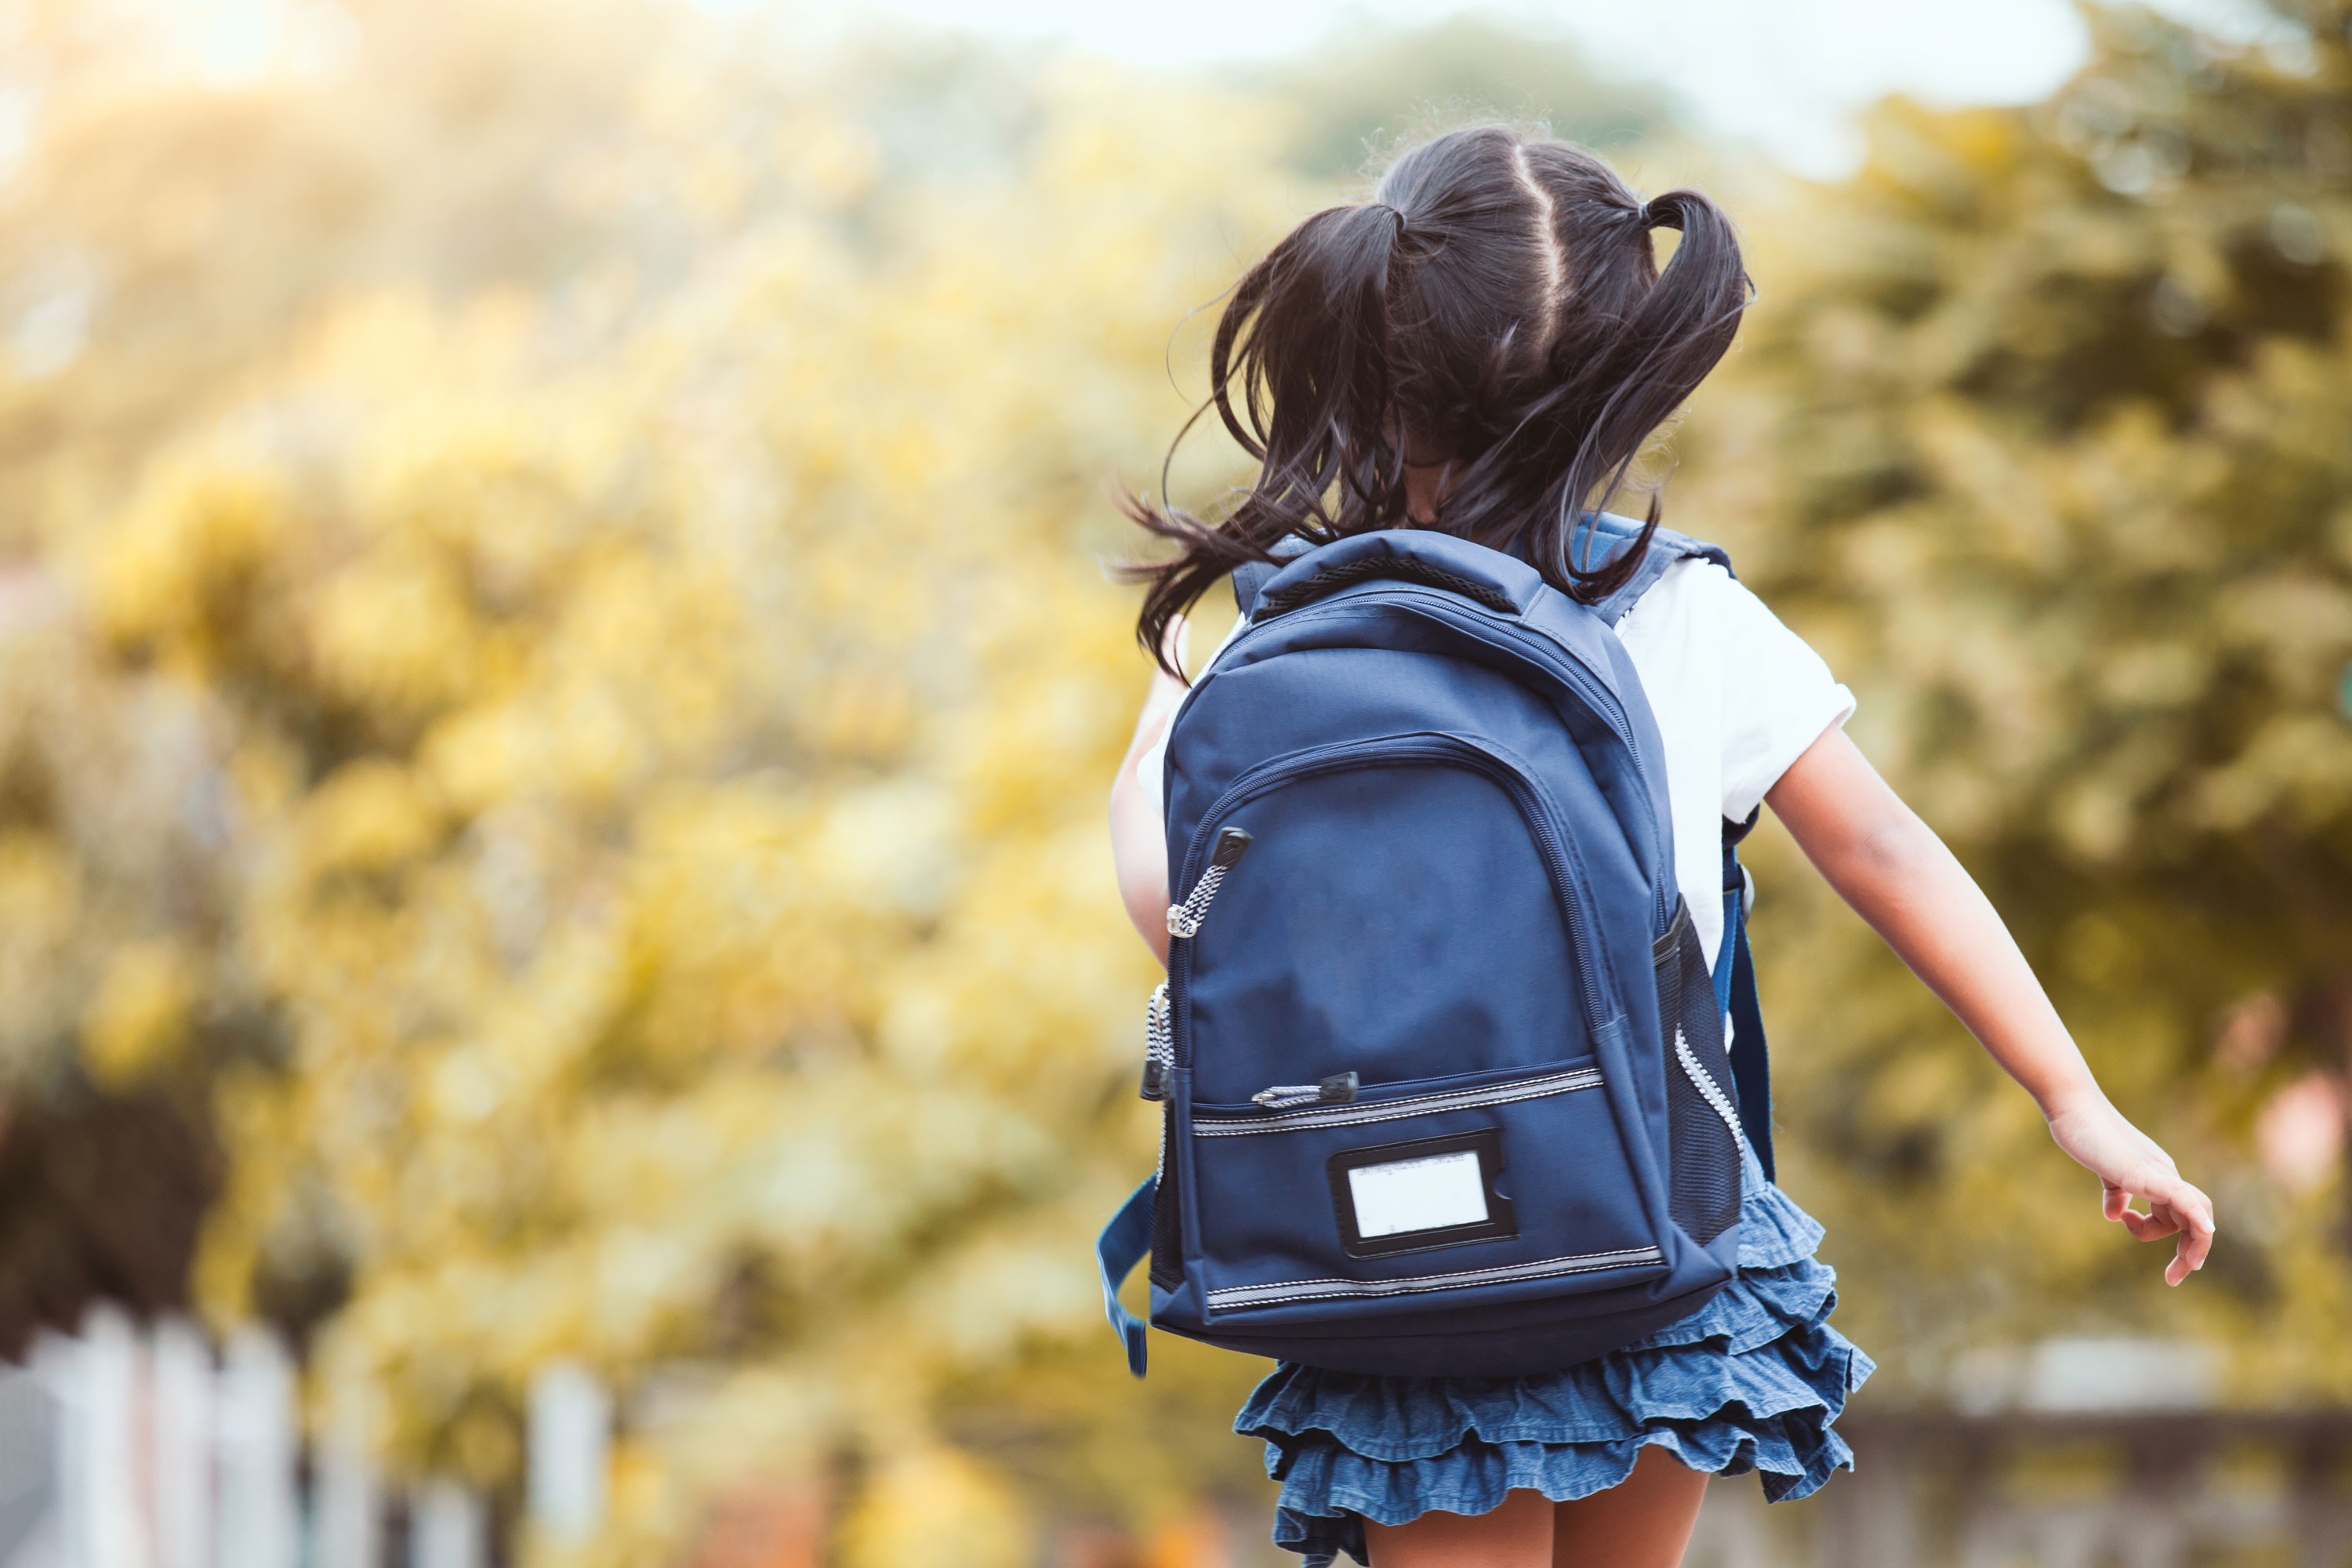 A child playing outside, wearing a navy backpack